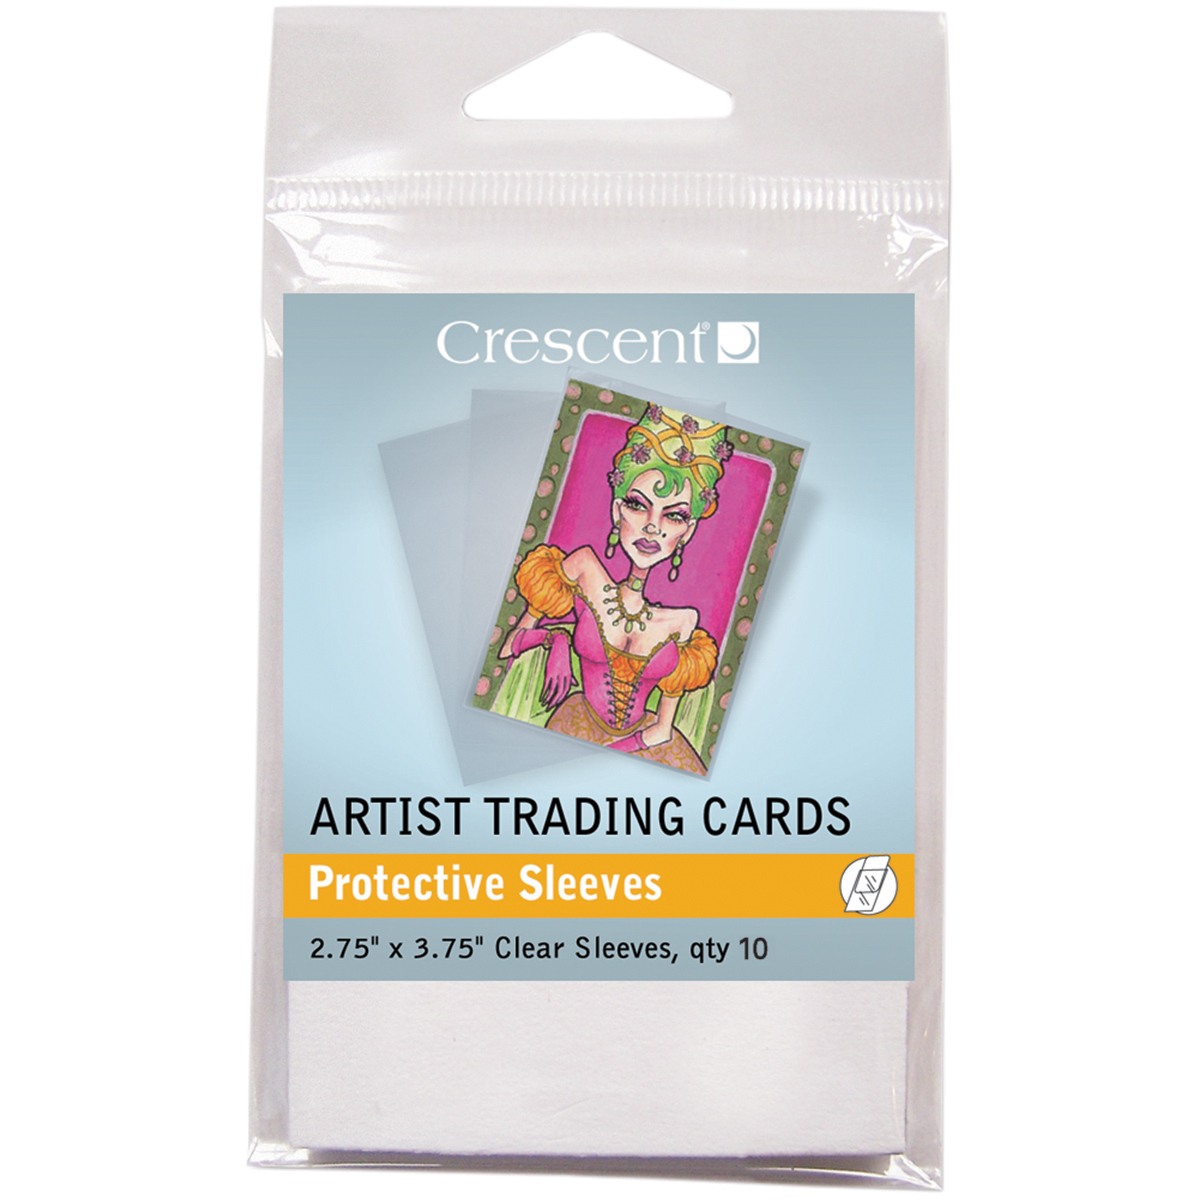 "Crescent Artist Trading Cards 2.75""X3.75"" 10/Pkg-Protective Sleeves"